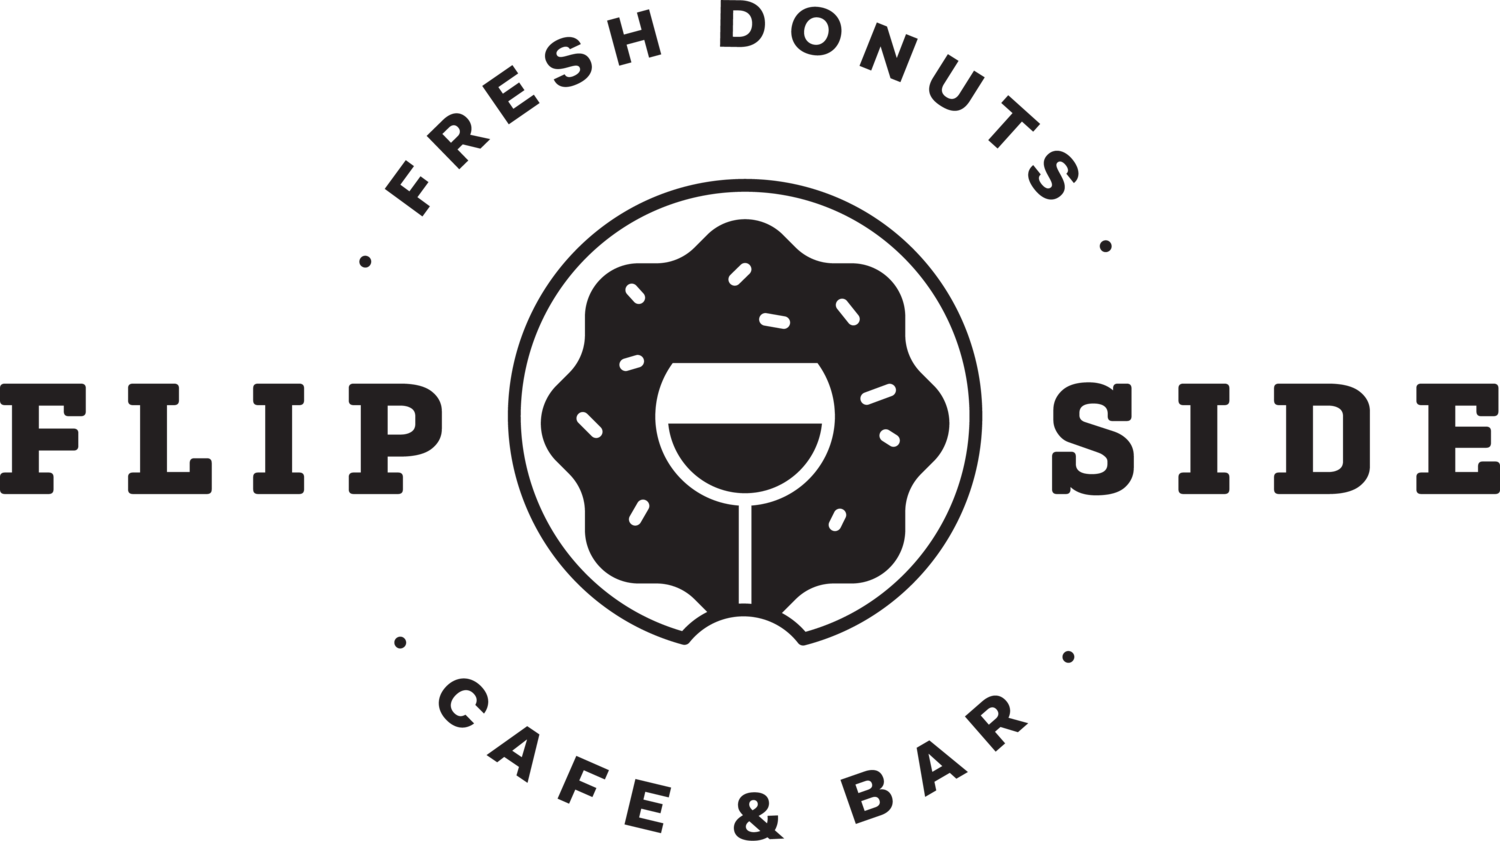 Flipside Donuts Cafe & Bar